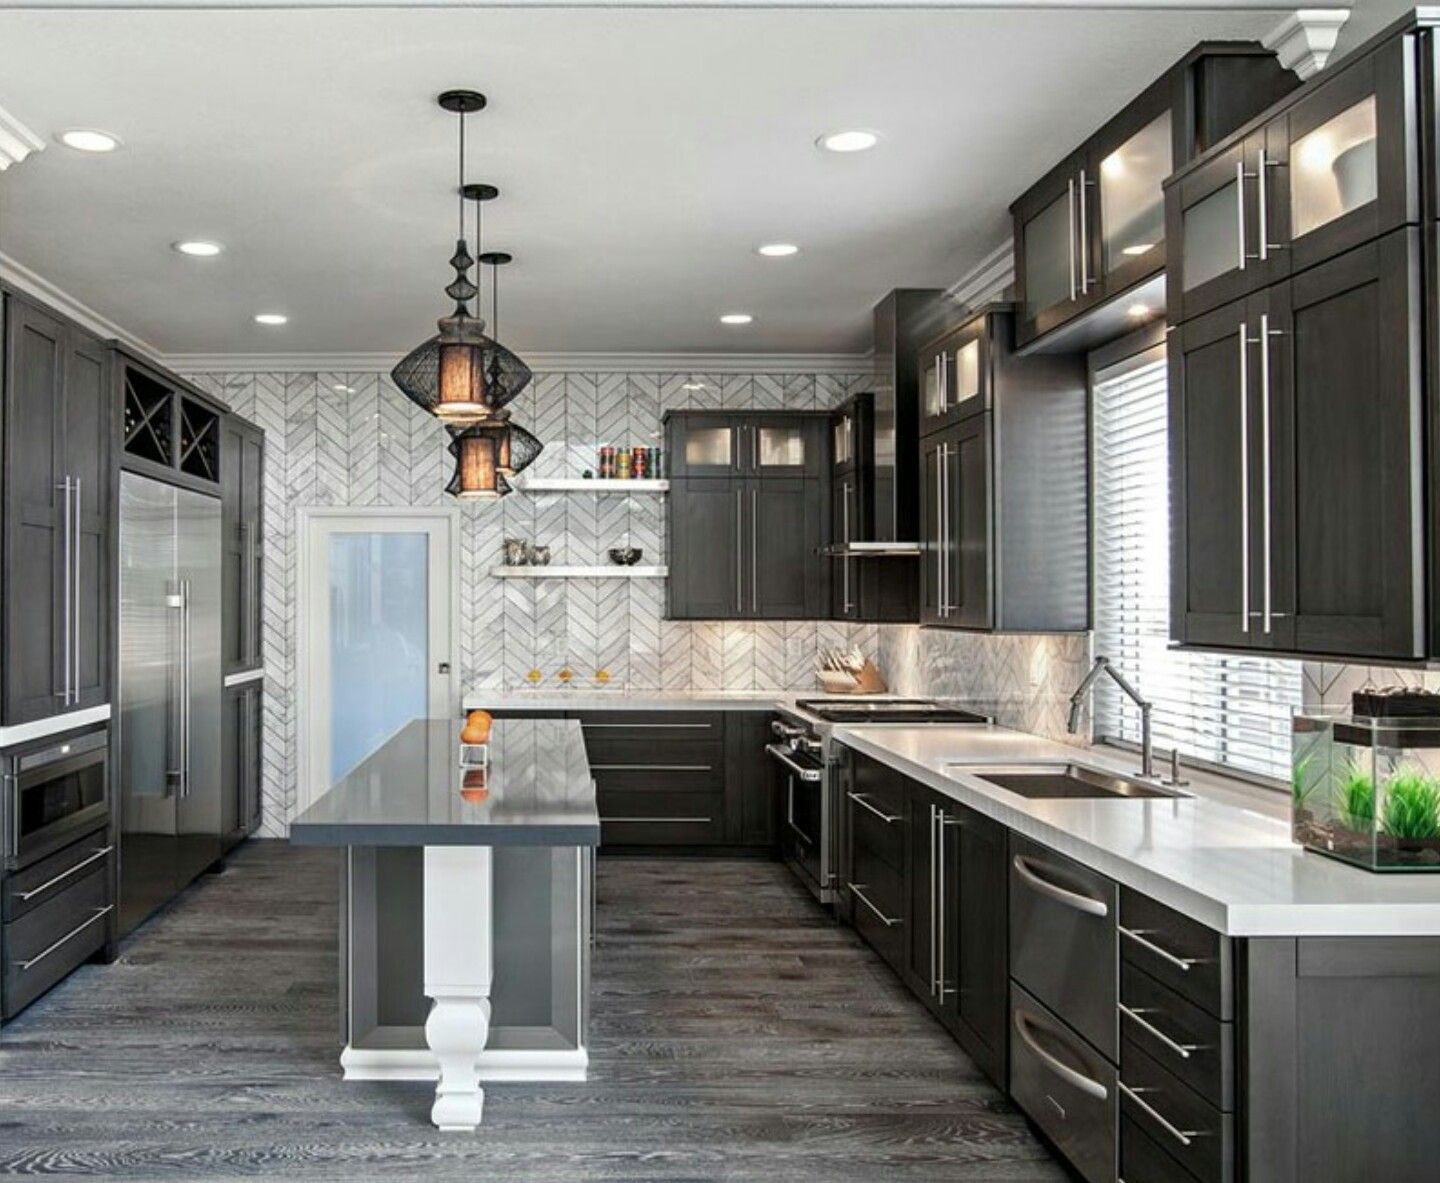 Pin By Brianaa On Cooking Oasis Kitchen Interior Design Modern Modern Kitchen Interiors Interior Design Kitchen